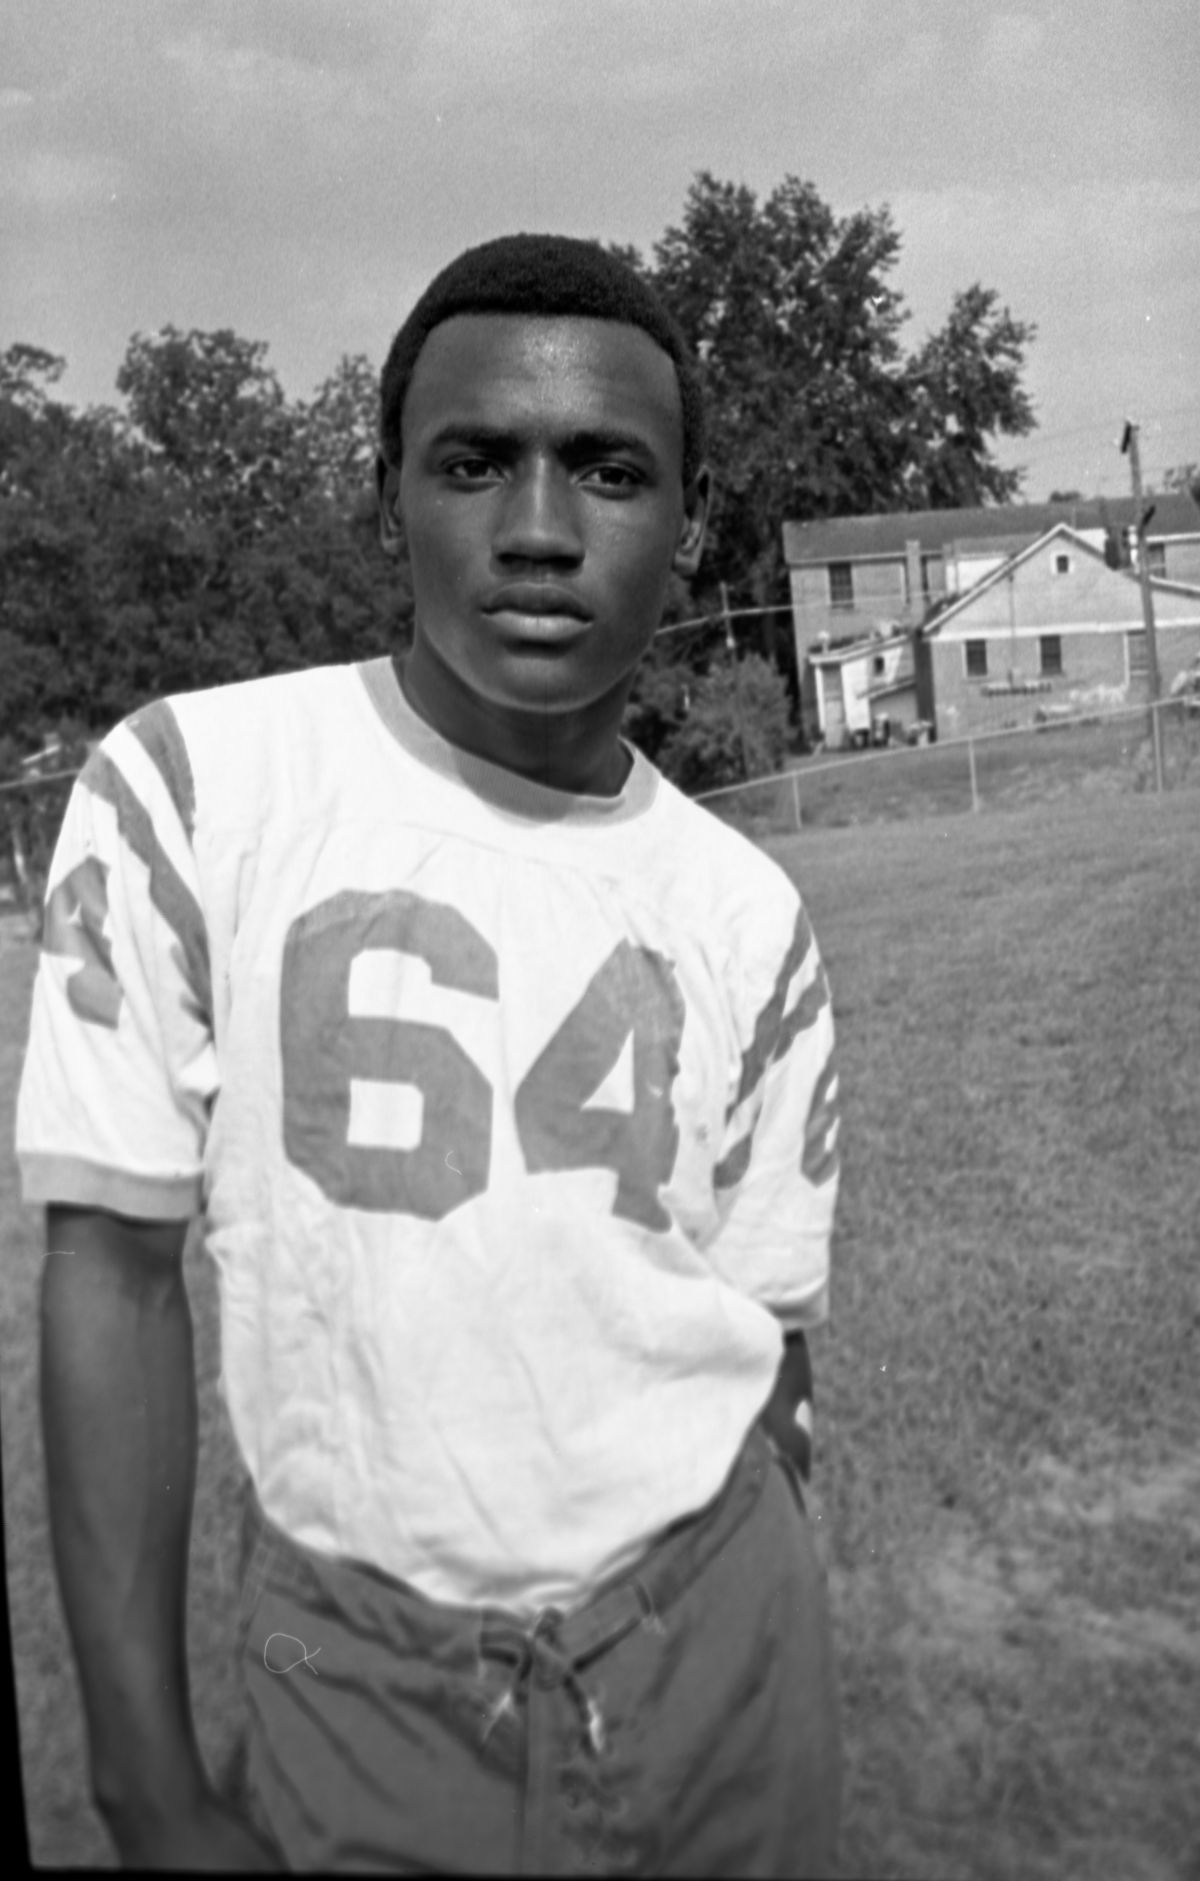 Portrait of a FAMU High School football player #64 in Tallahassee.